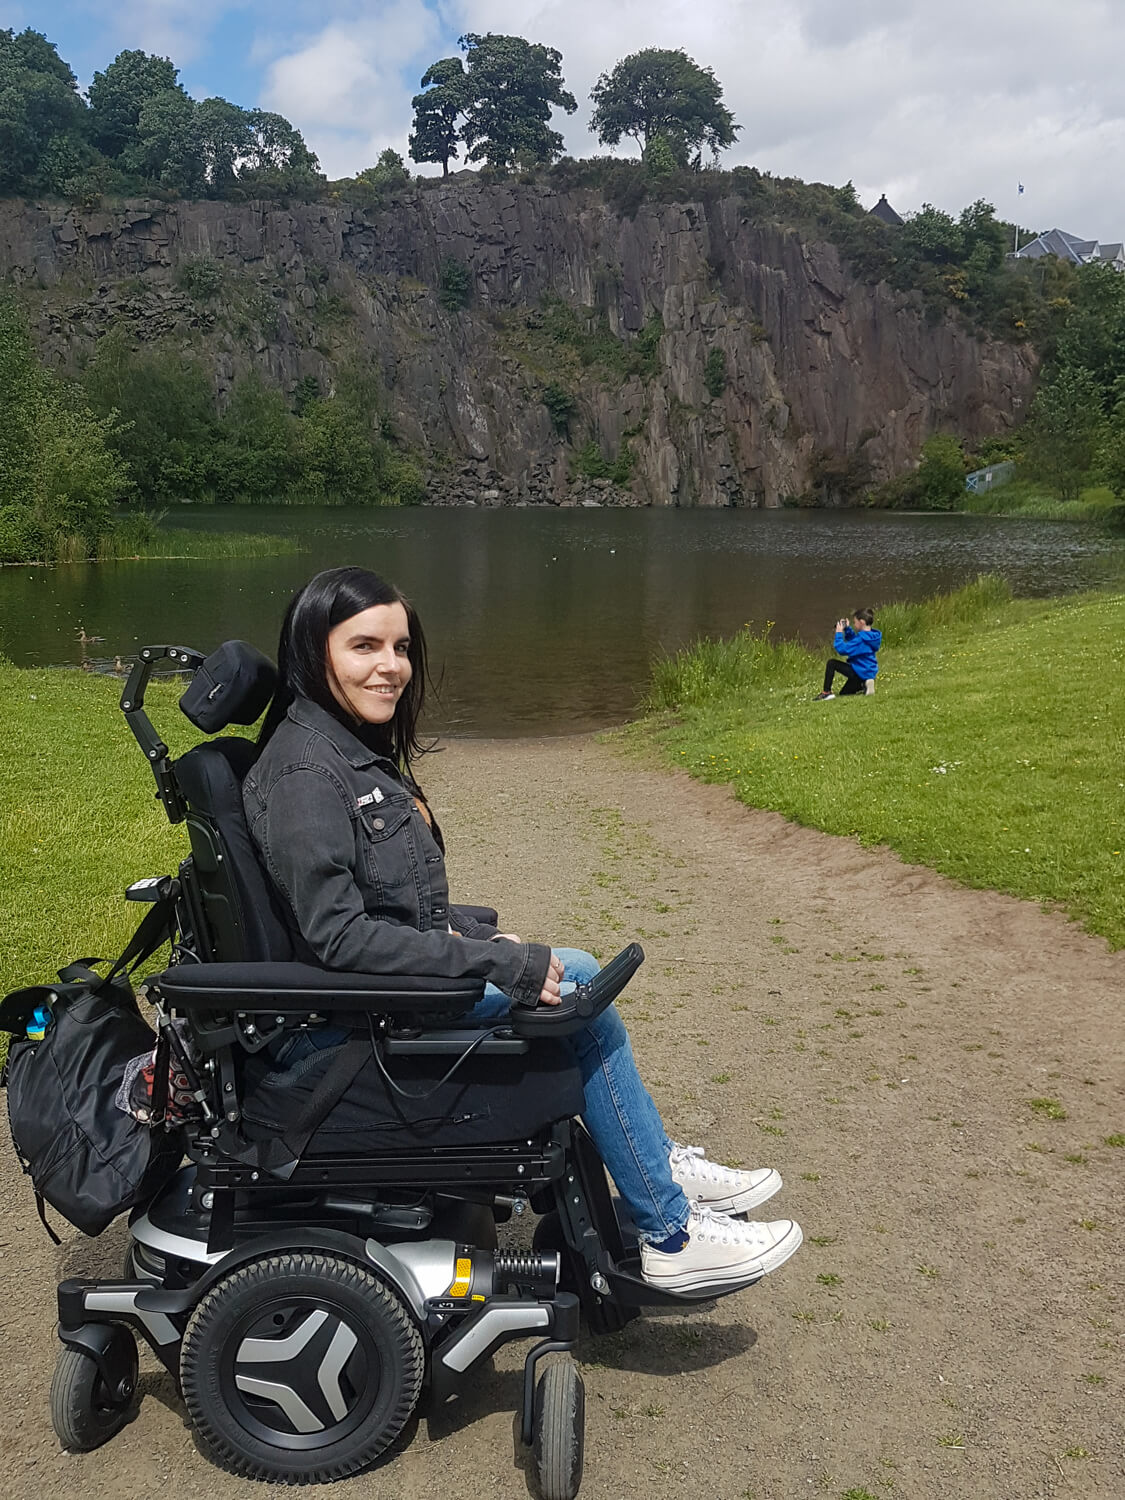 Emma, a wheelchair user sitting in a black and silver Permobil M3 wheelchair with a reservoir behind her.